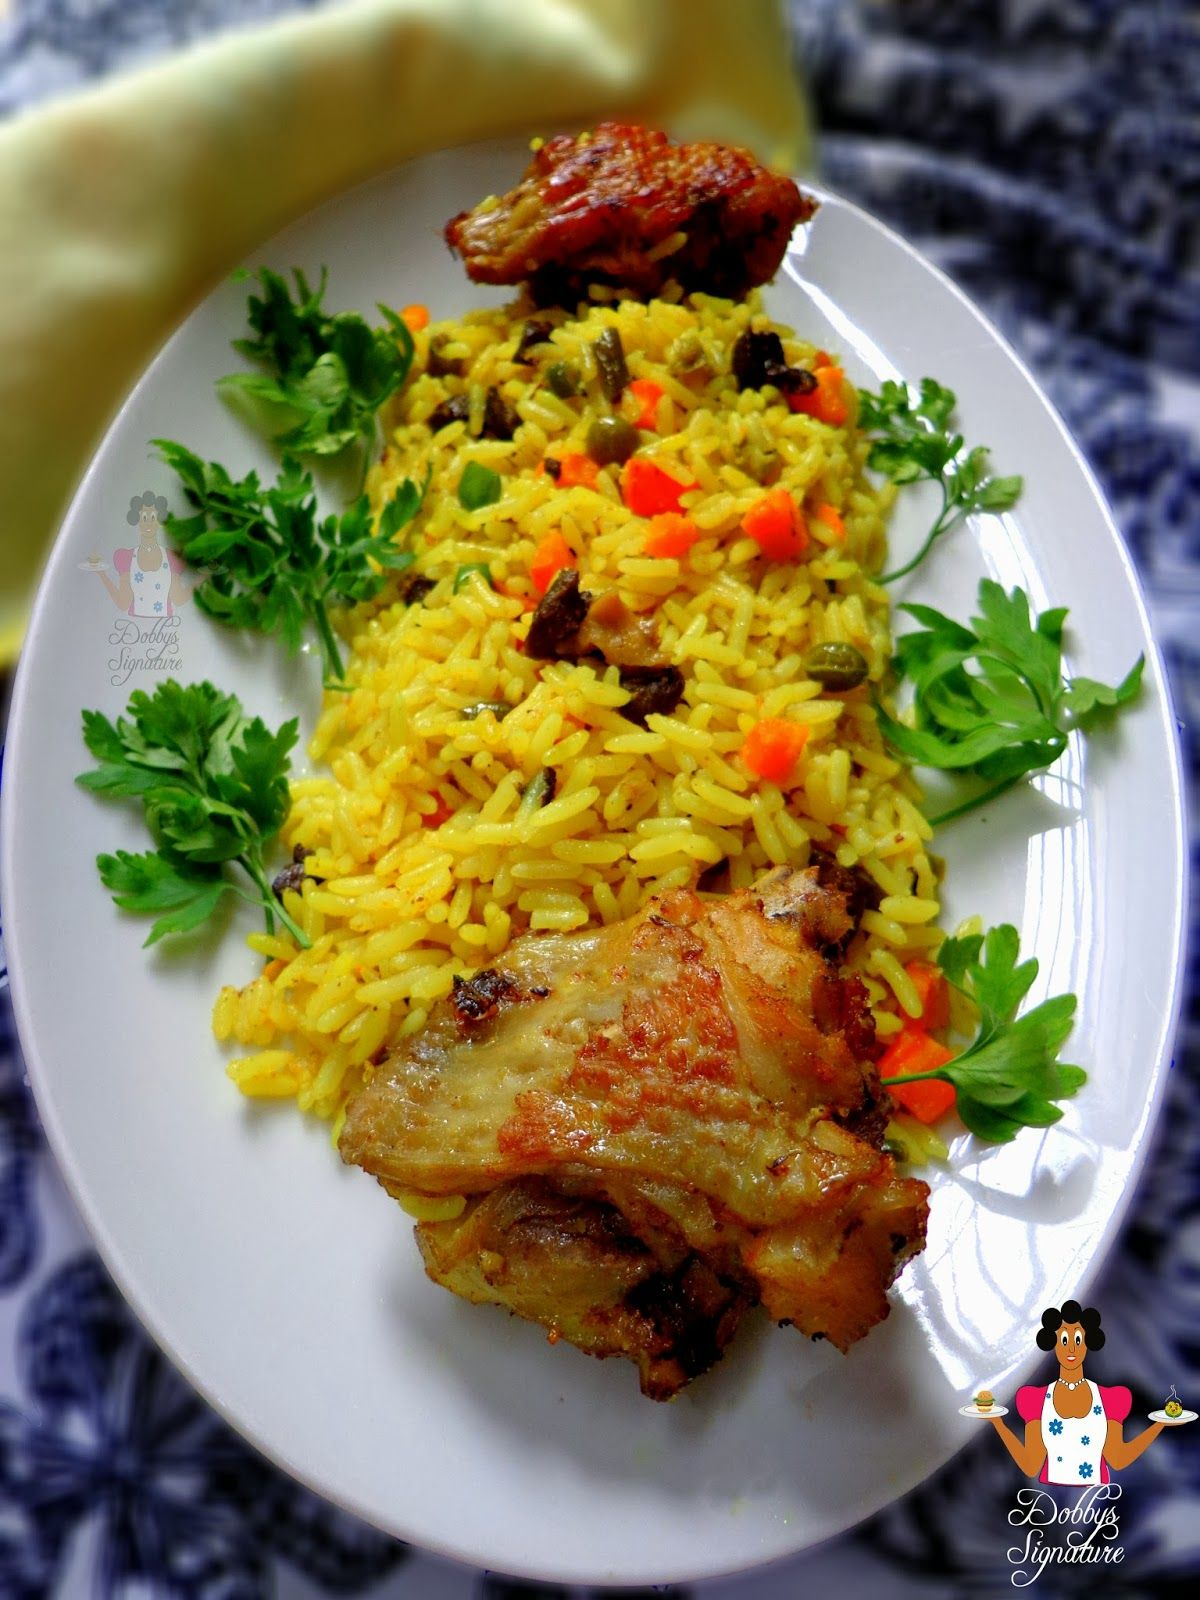 African Cuisine Recipes Dobbys Signature Nigerian Food Blog Nigerian Food